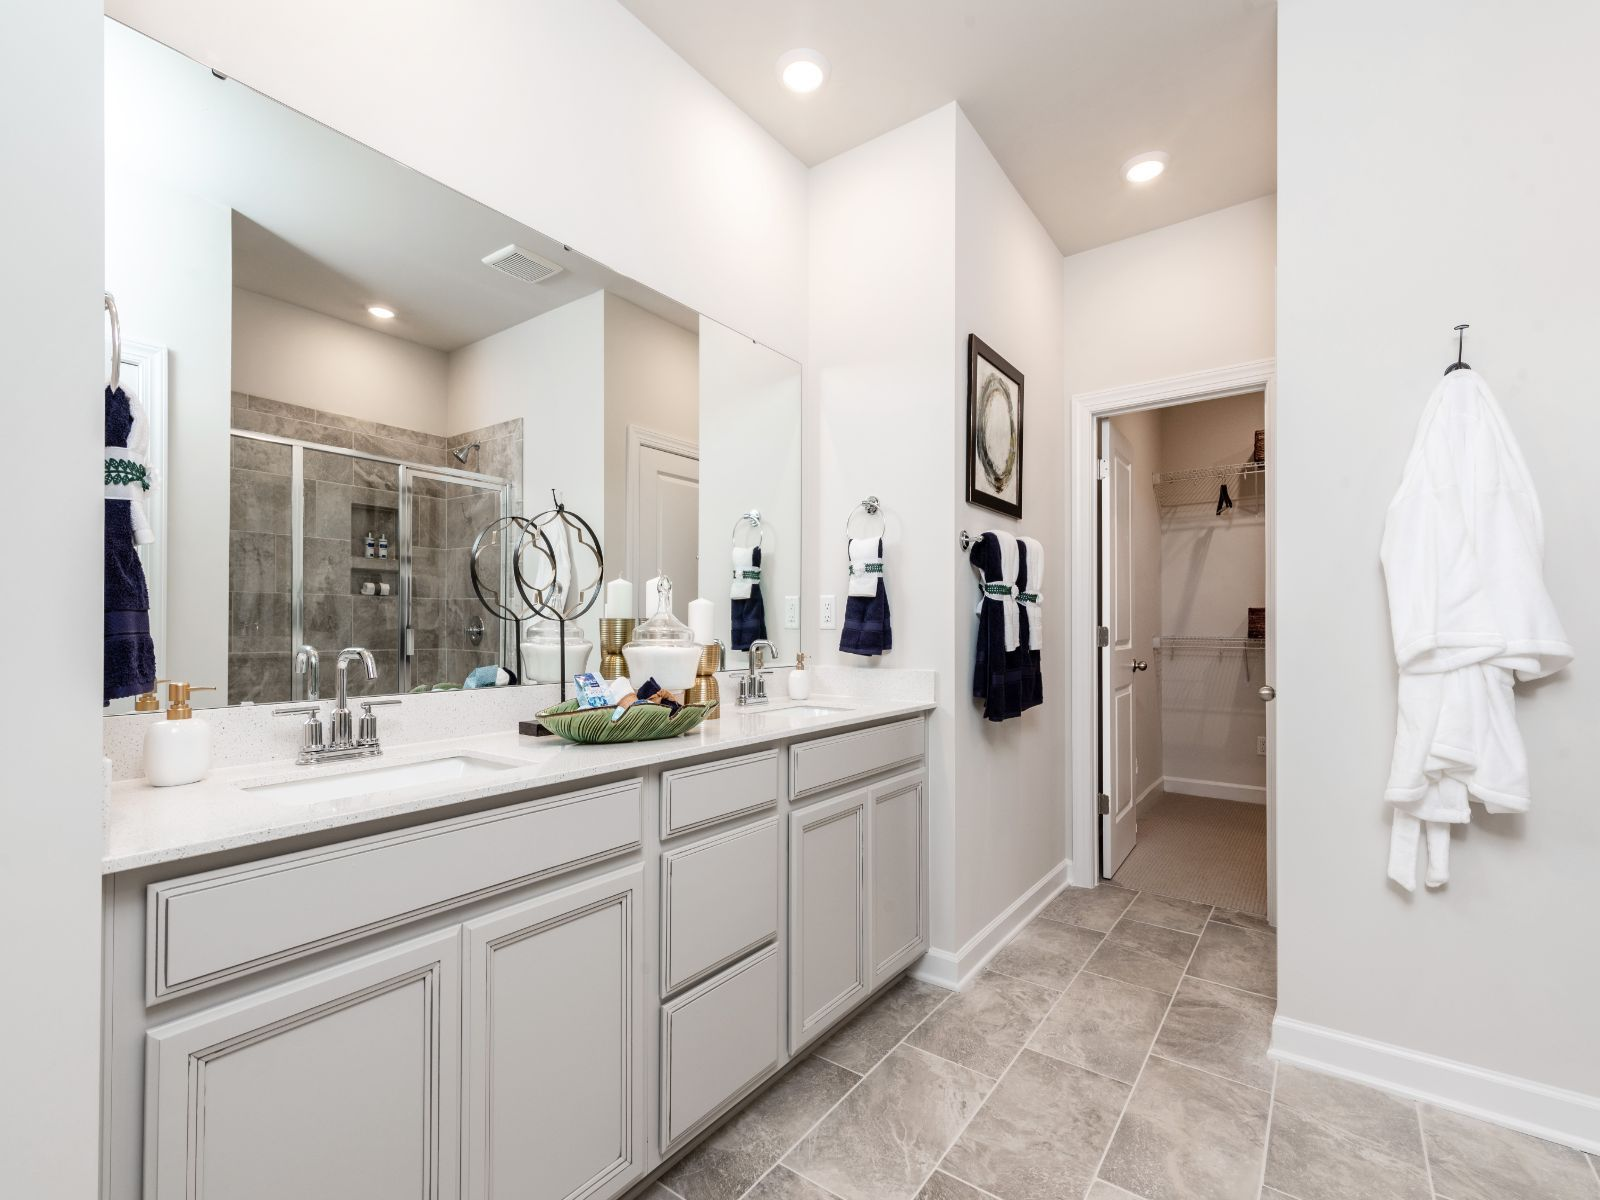 Bathroom featured in the Camden By Meritage Homes in Charlotte, NC